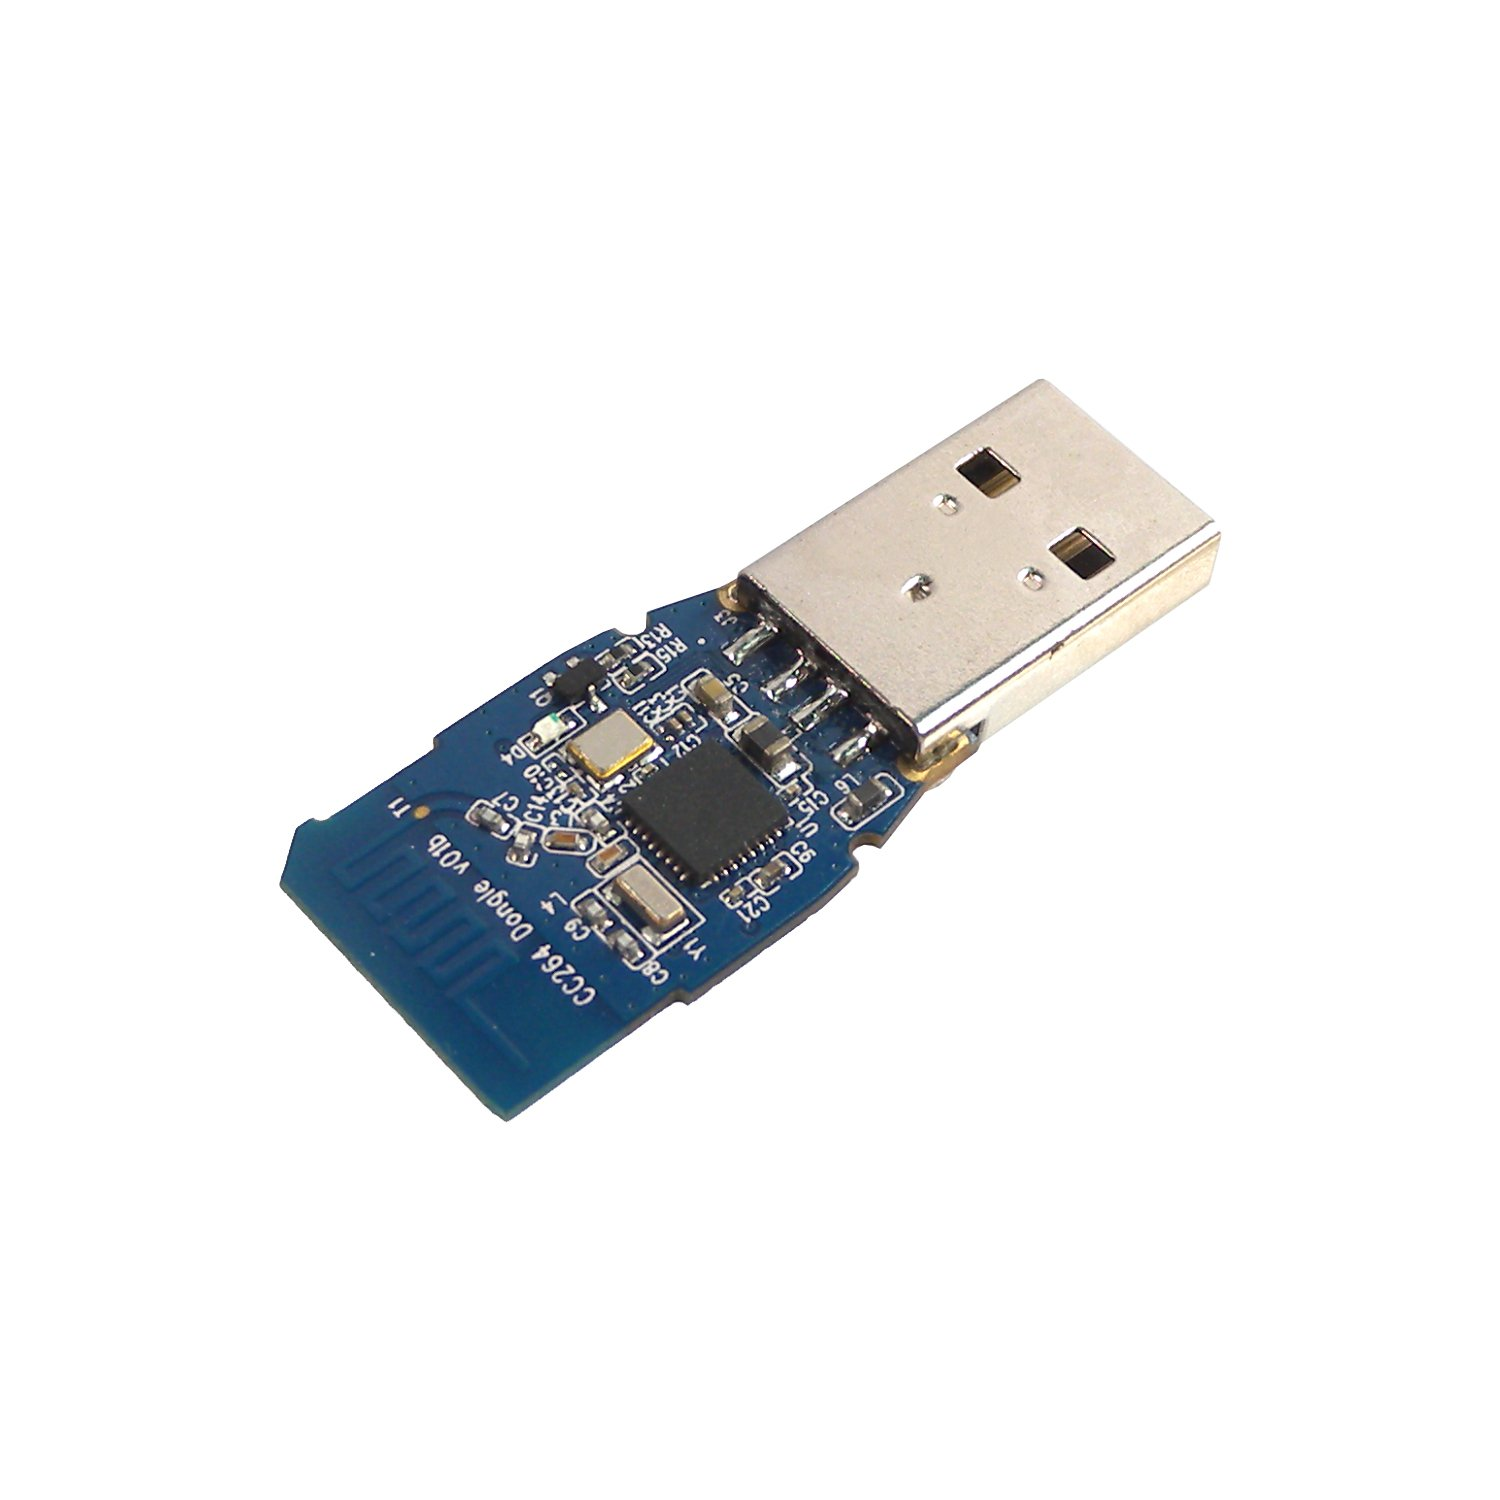 MakerSpot CC2640 Bluetooth Low Energy BLE 5.0 USB HID Dongle (Backward Compatible with BLE 4.0/4.1/4.2) by MakerSpot